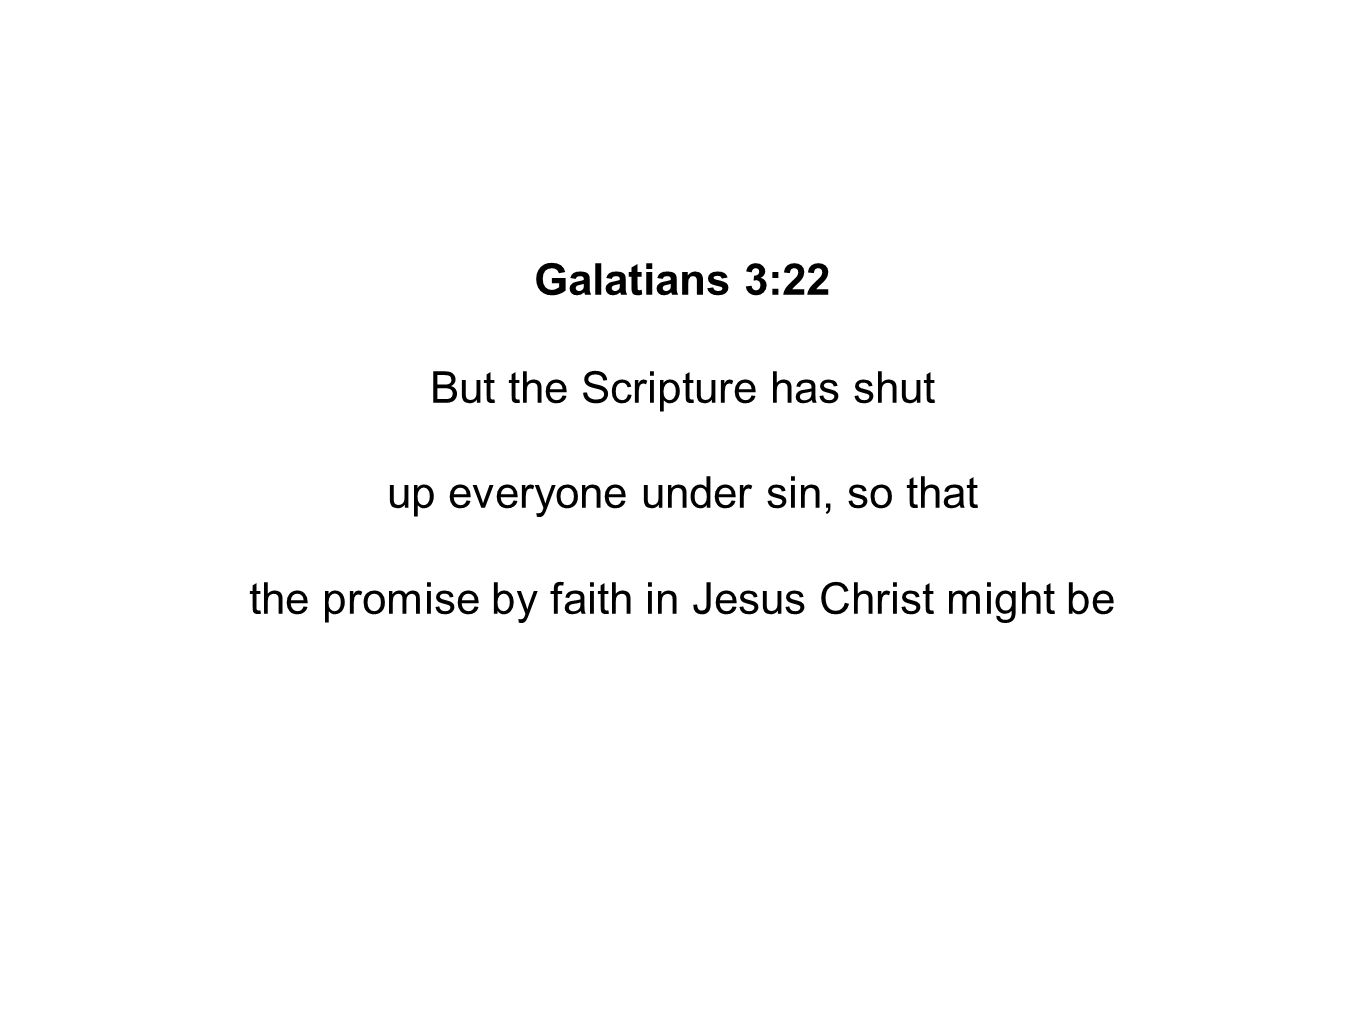 Galatians 3:22 But the Scripture has shut up everyone under sin, so that the promise by faith in Jesus Christ might be